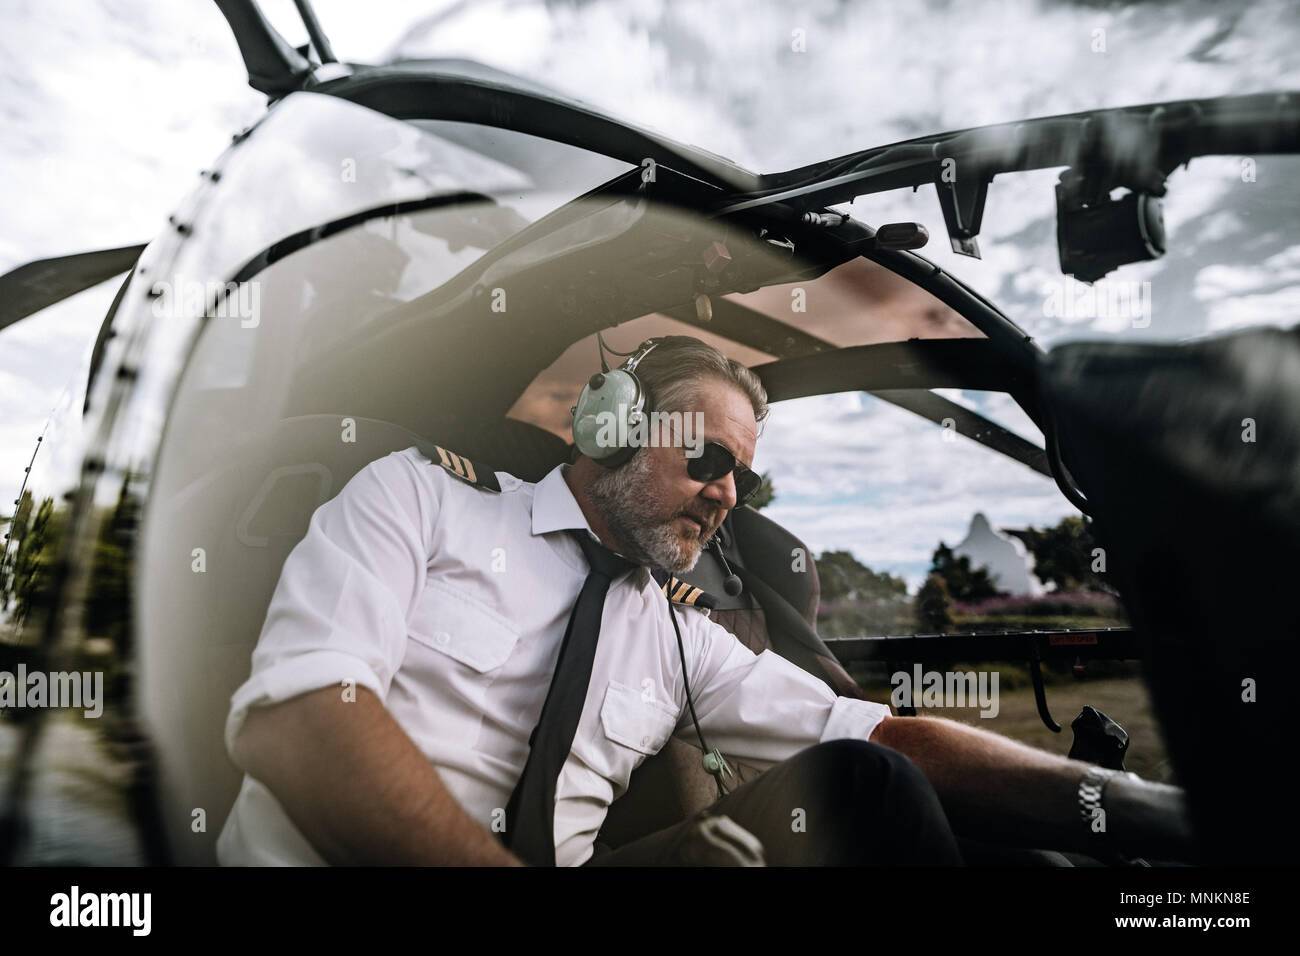 Male pilot operate switches of helicopter system prior to departure. Pilot sitting inside helicopter cockpit. - Stock Image